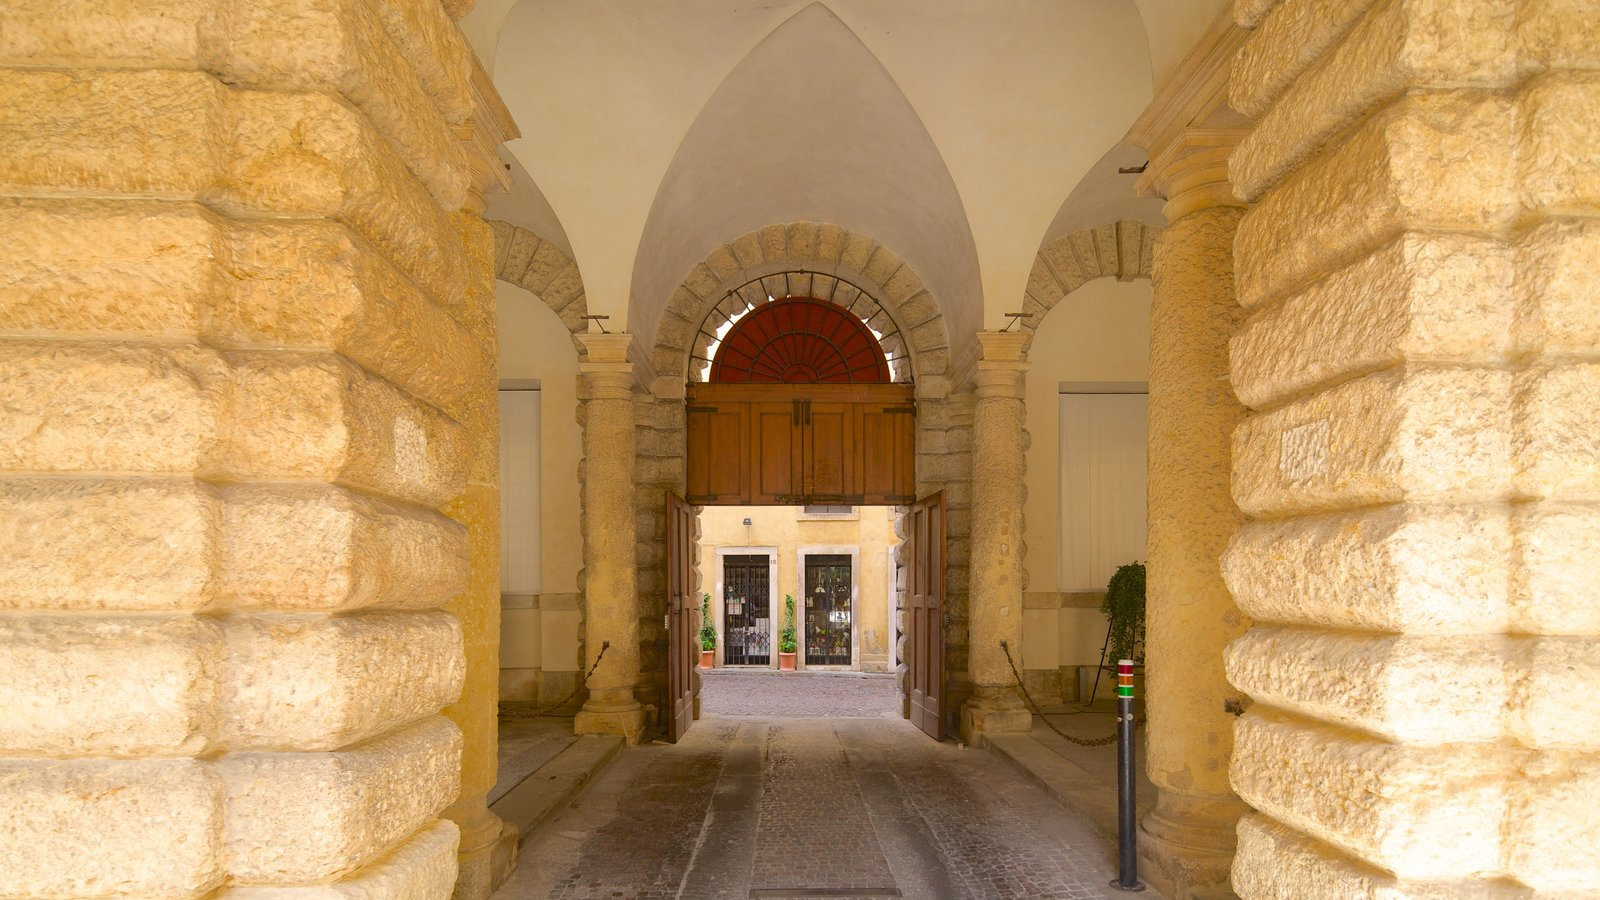 Palazzo Thiene showing interior views, a castle and heritage elements